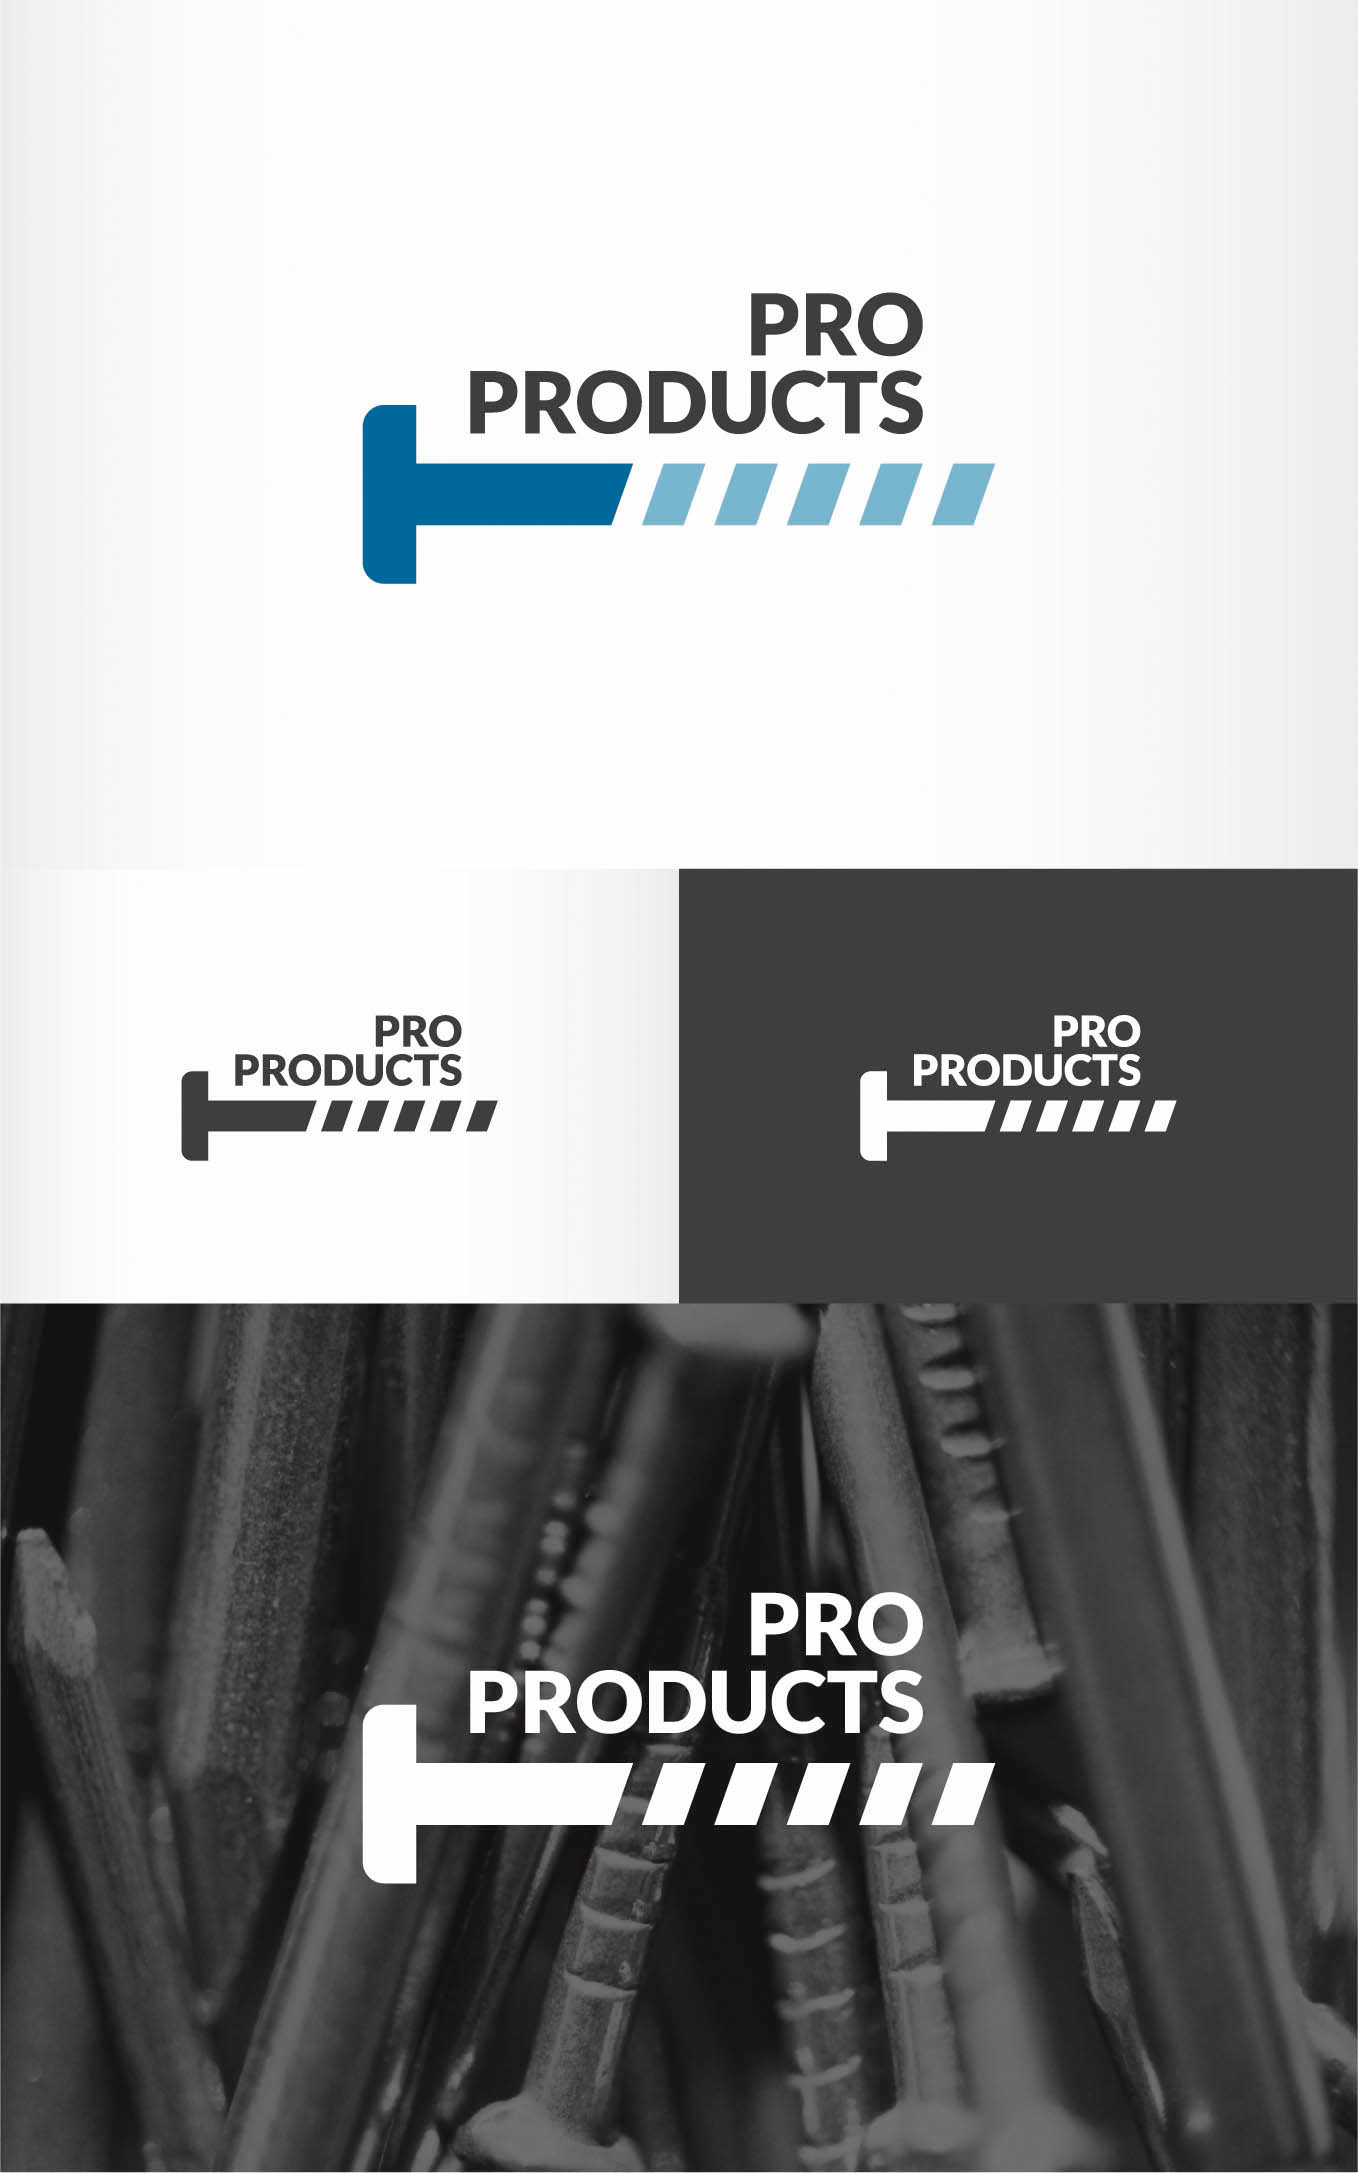 Logo Design by Andrés González - Entry No. 78 in the Logo Design Contest Fun yet Professional Logo Design for ProProducts.